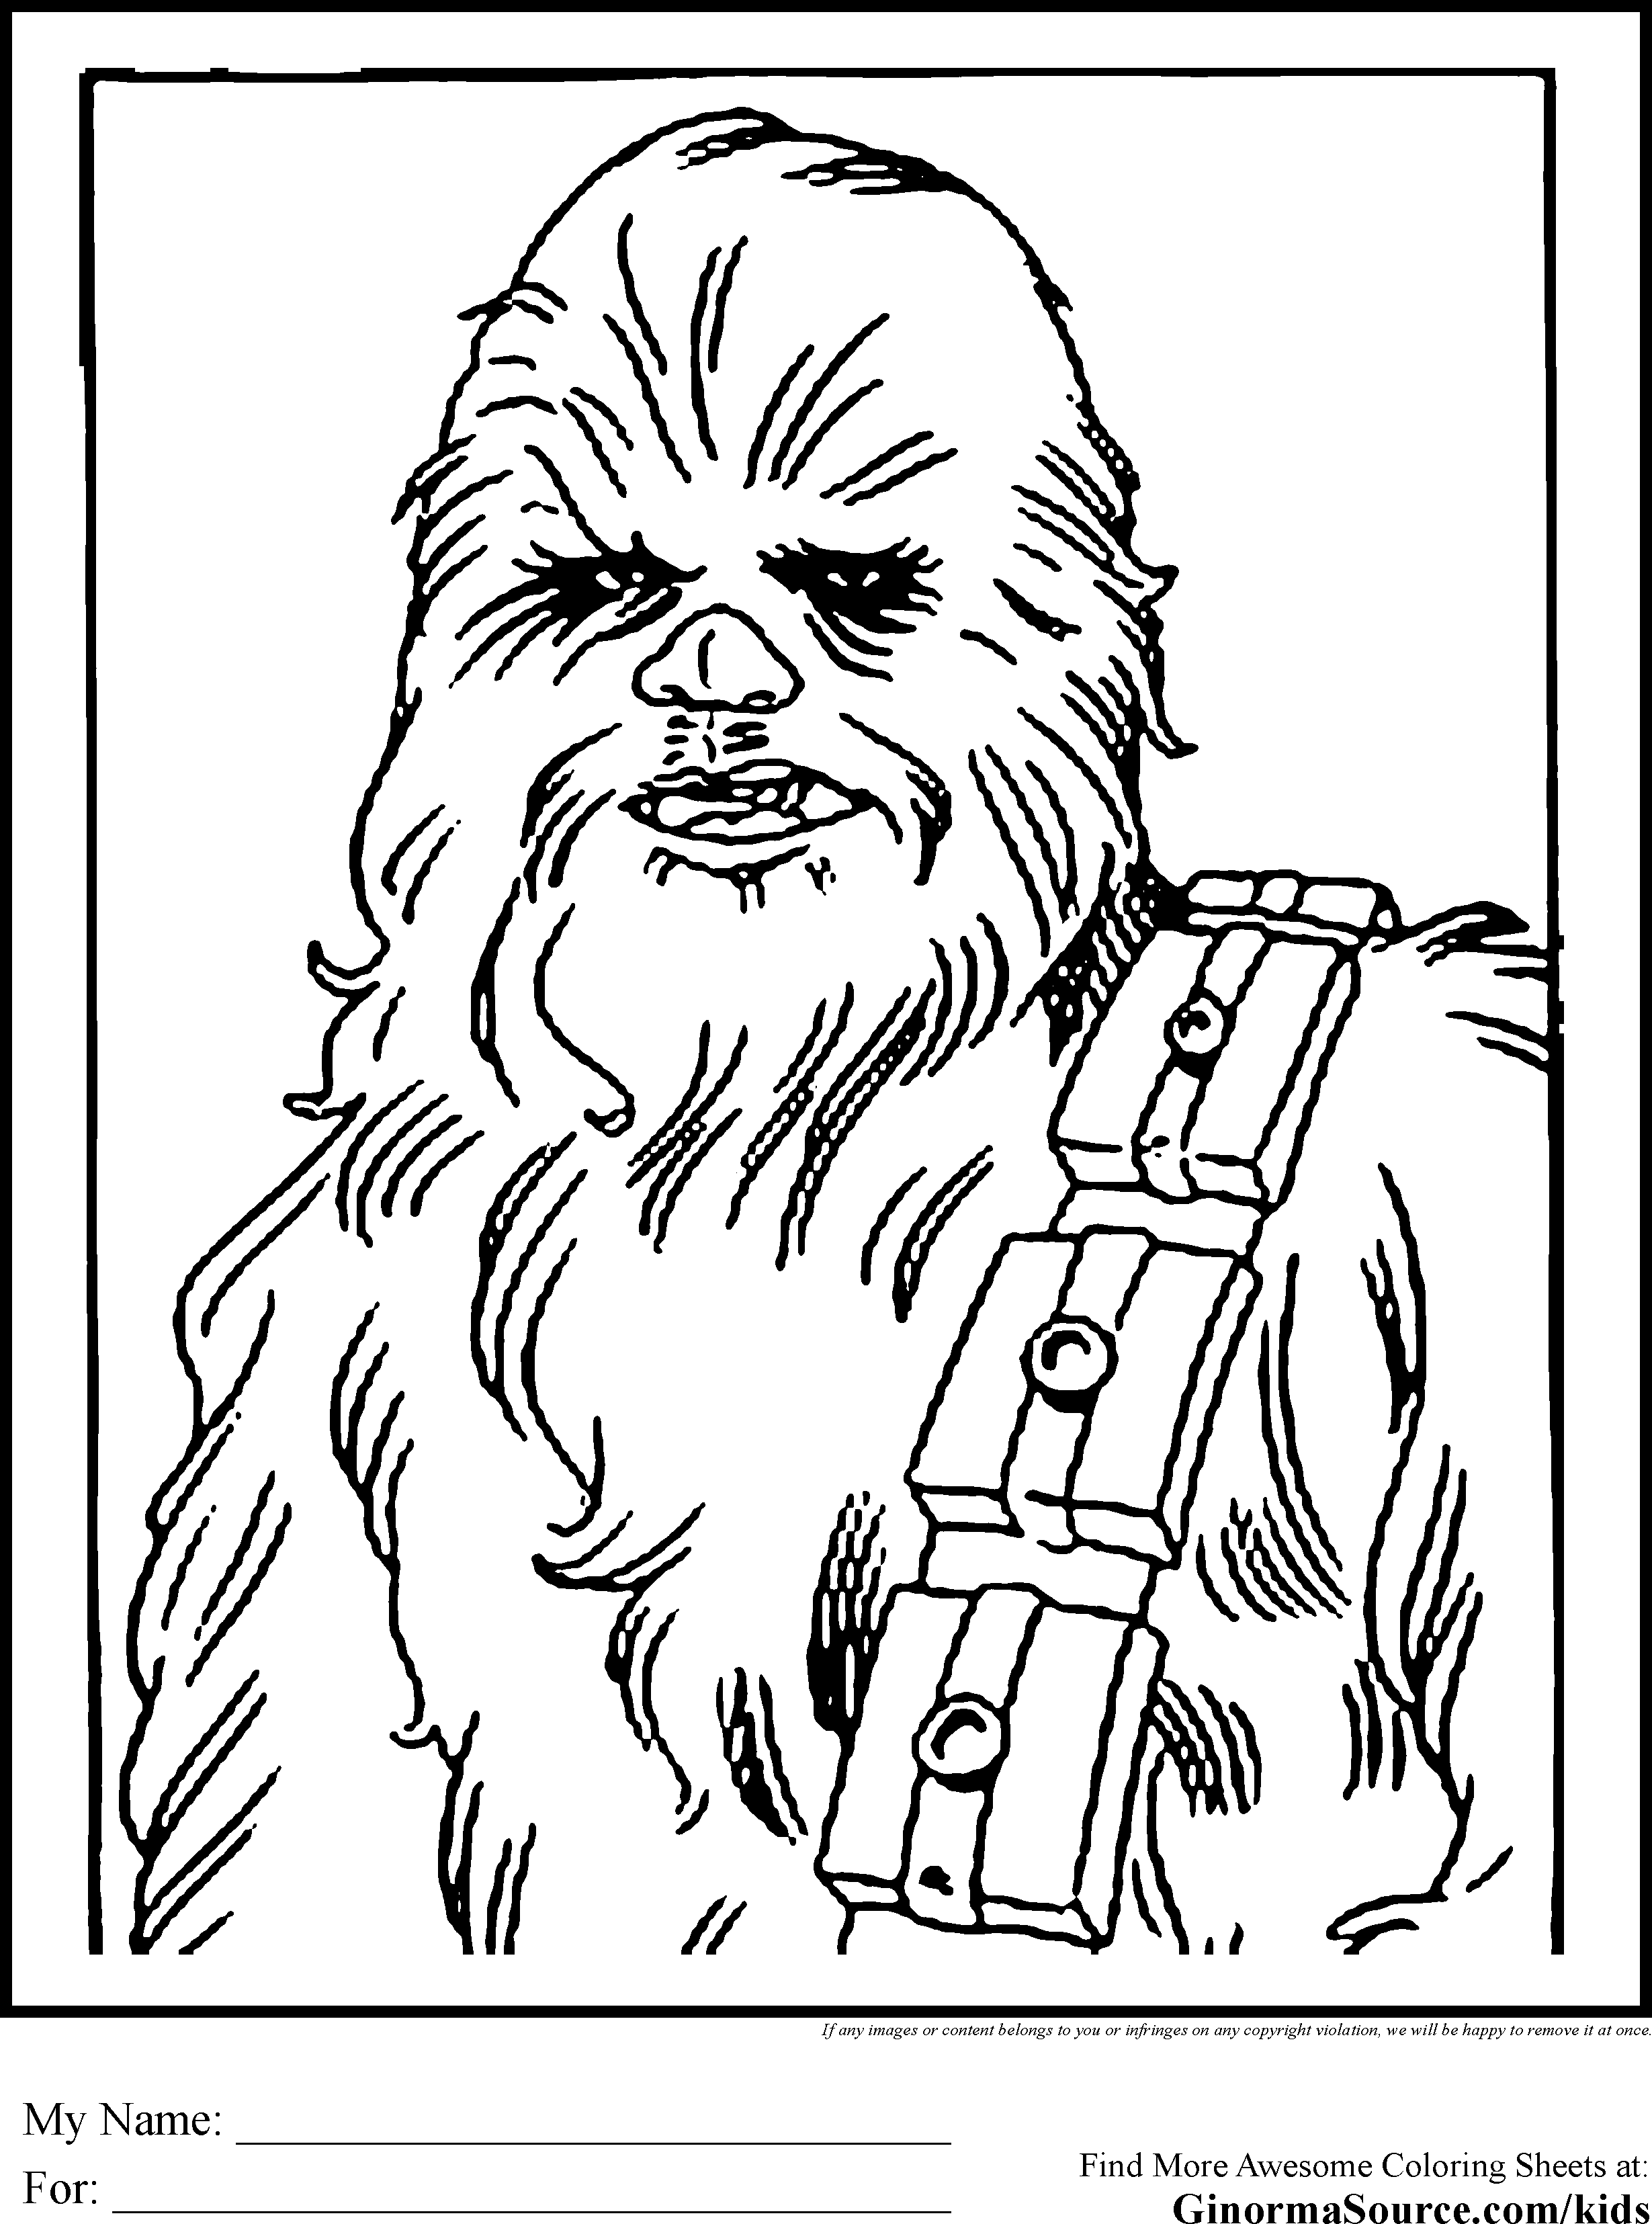 Star Wars Colouring Pages Chewbacca Wookie Star wars